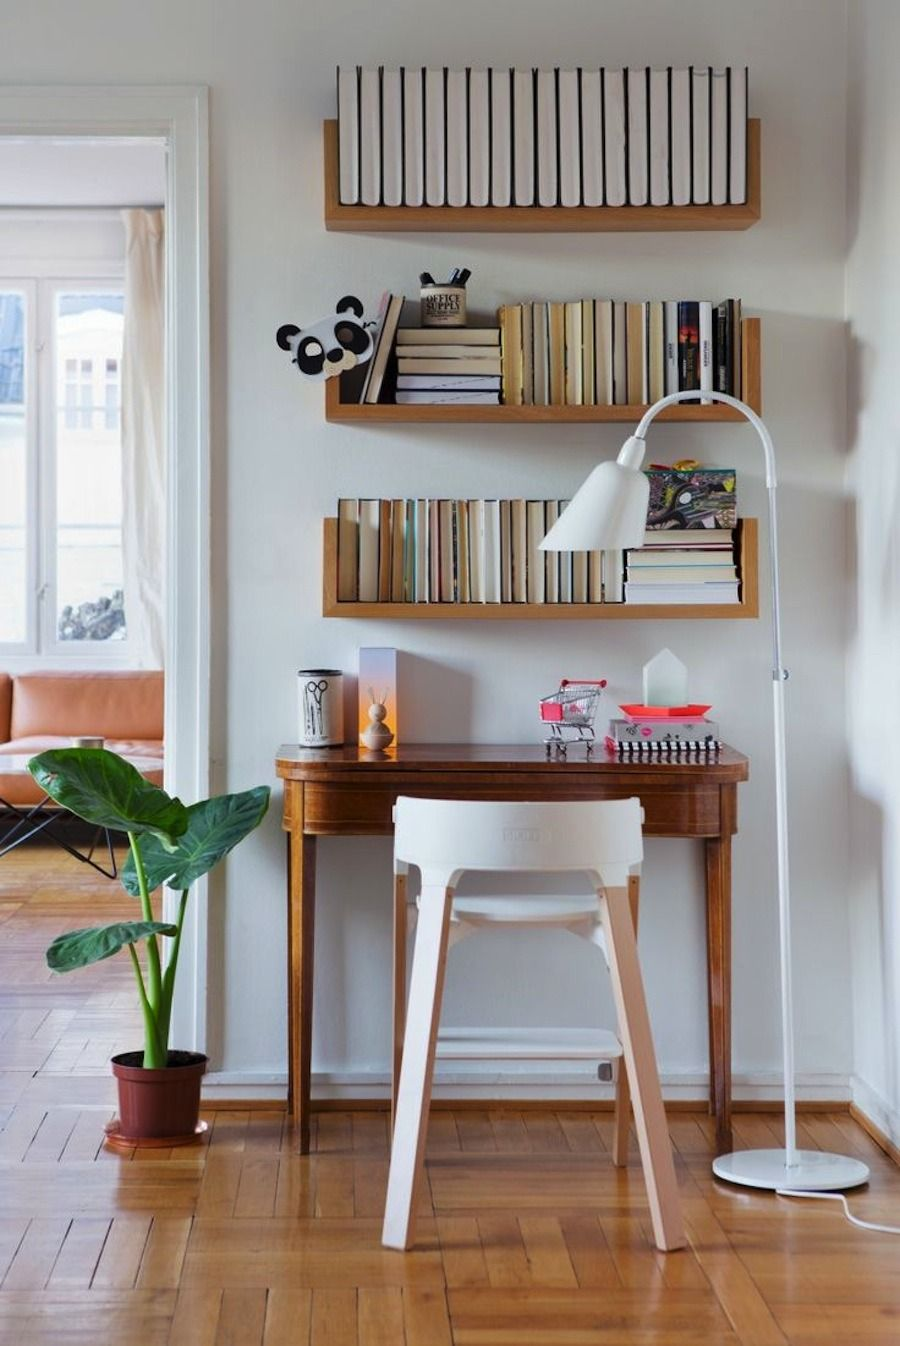 bookshelf above desk storage idea decor small home offices floating shelves over inch ture ledge wood and metal open shelving dvd shelf ideas natural media stand with bookshelves